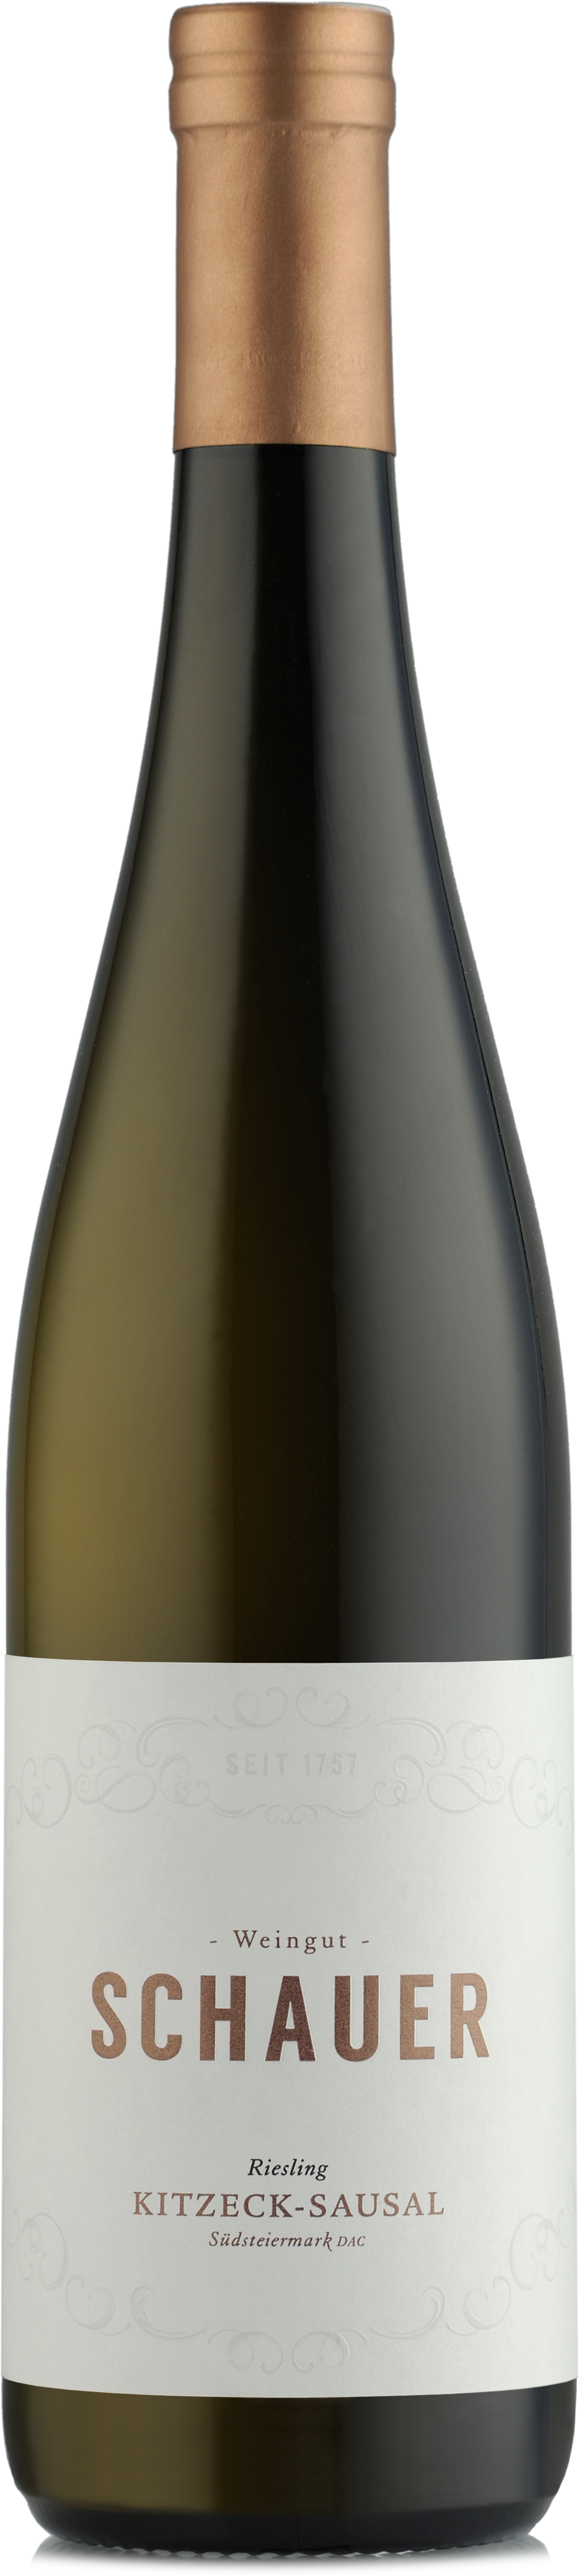 Riesling Kitzeck-Sausal DAC 2018